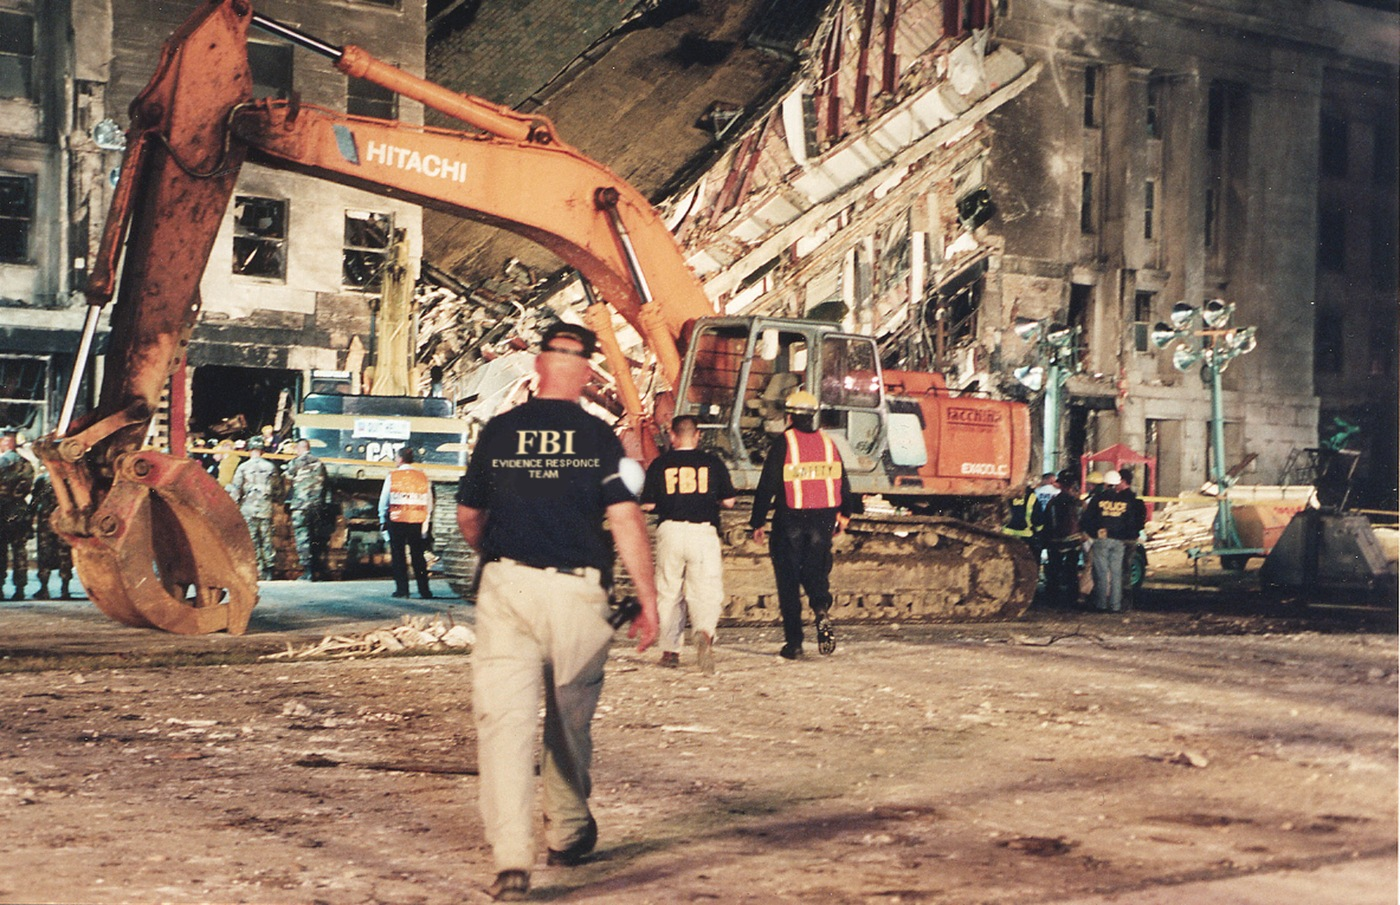 Washington Field Office Evidence Response Team members at the Pentagon shortly after the attack on 9/11.